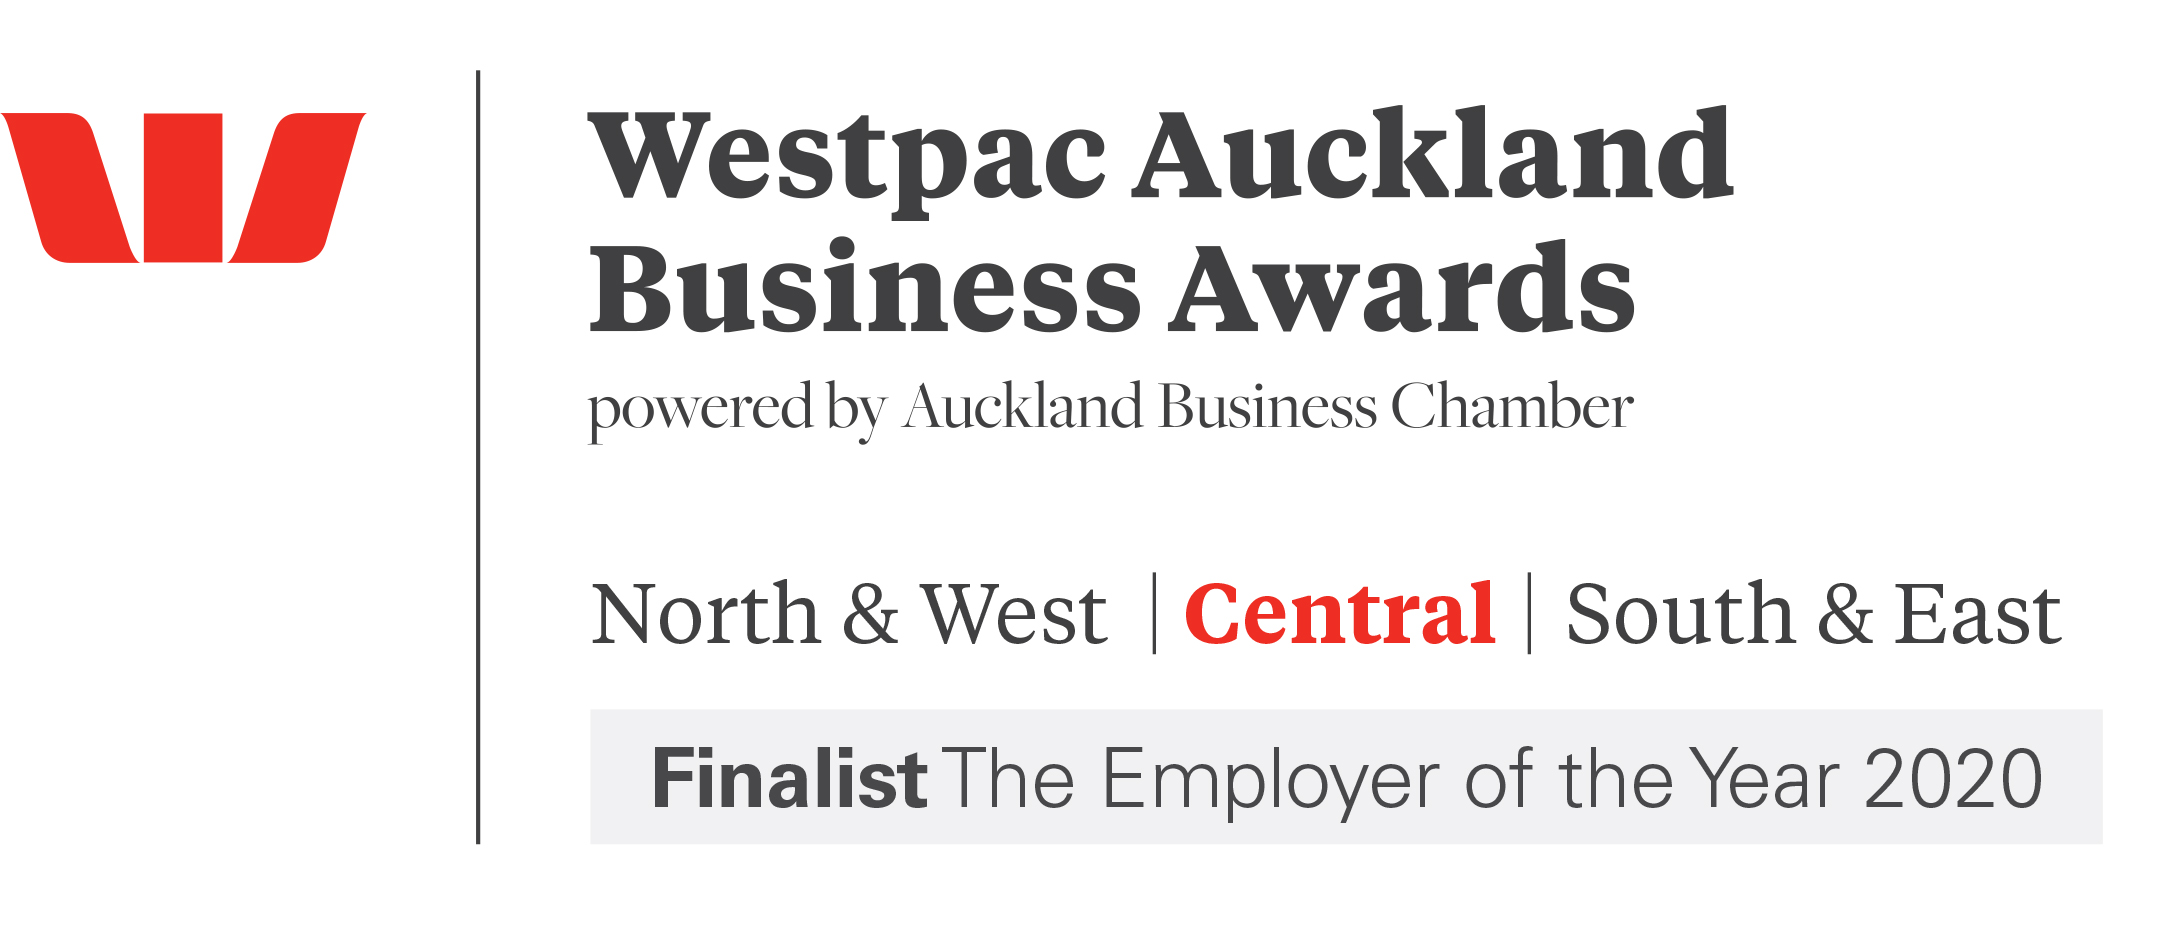 WABA 2020 FINALIST LOGO (CENTRAL) THE EMPLOYER OF THE YEAR (2)